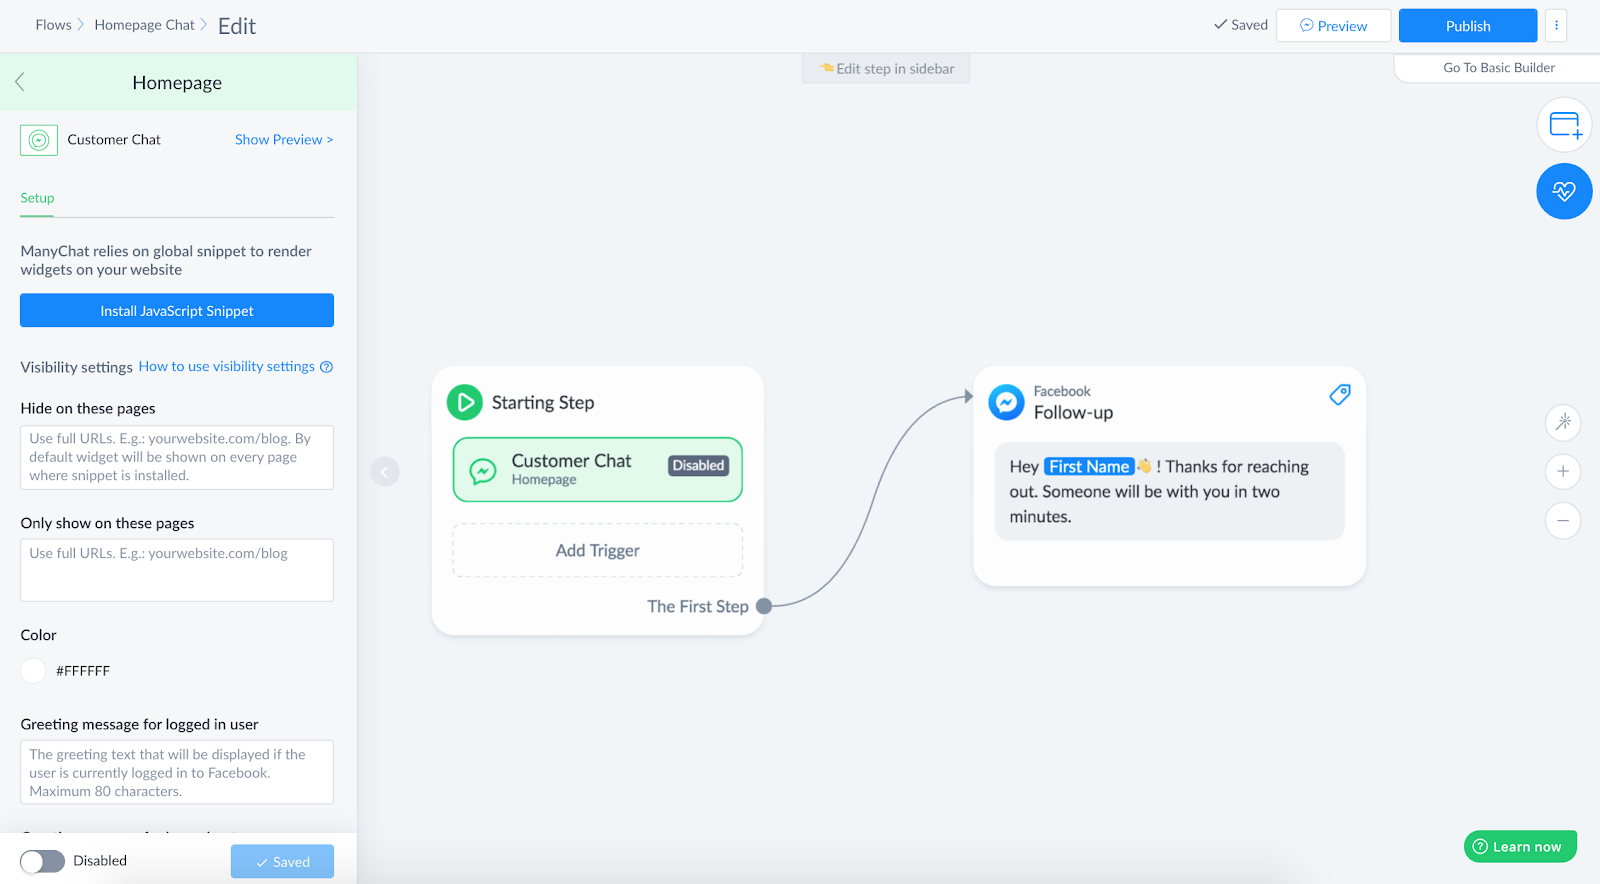 Adding Customer Chat in Flow builder